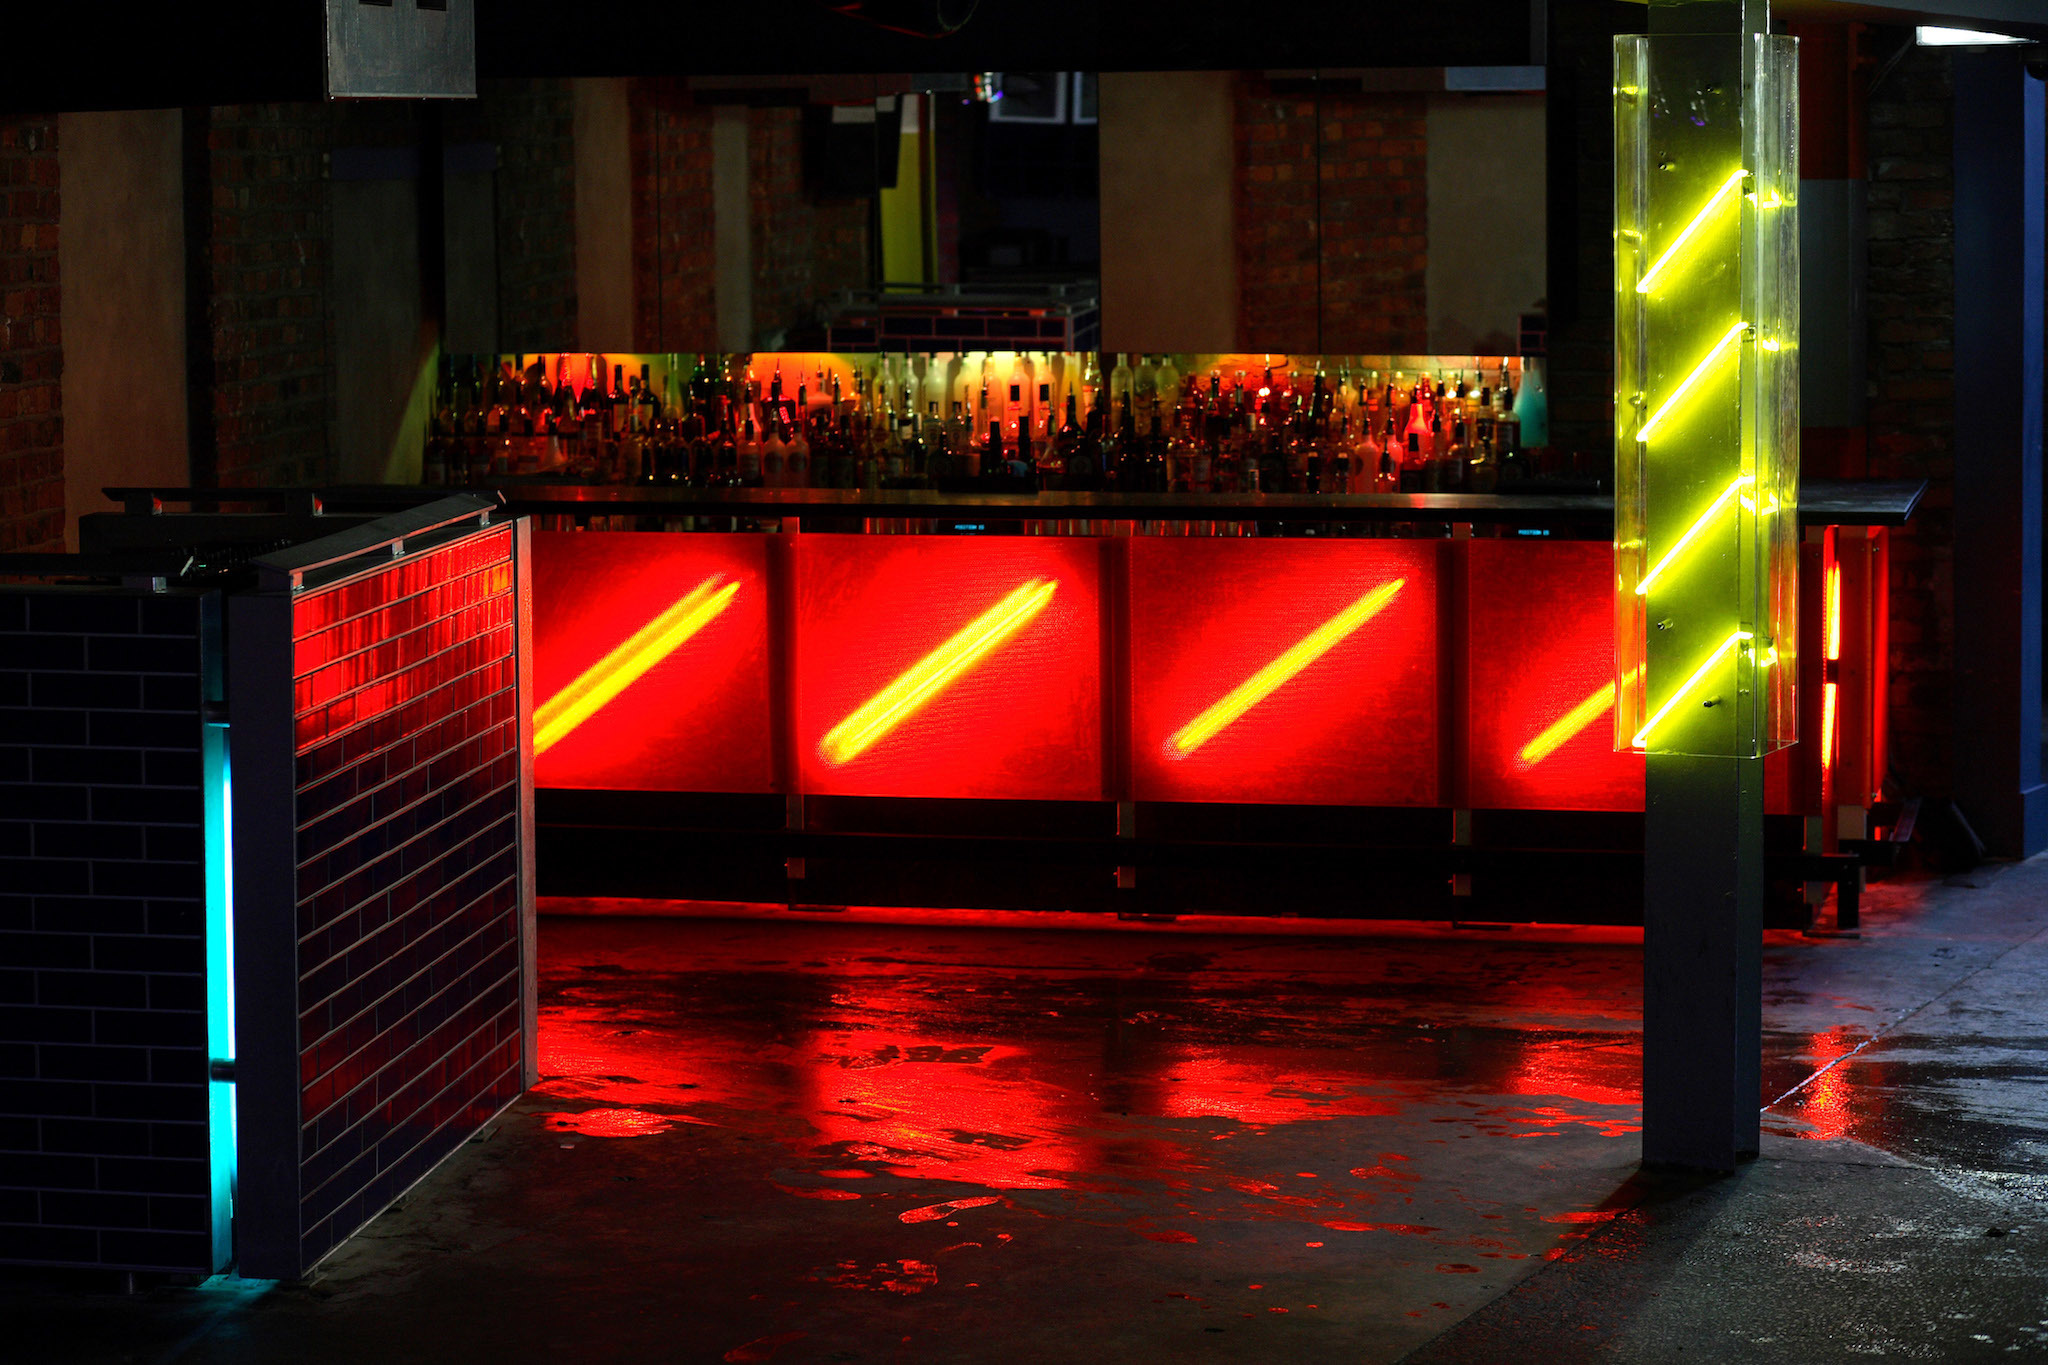 Factory, Manchester - for use in Schweppes campaign